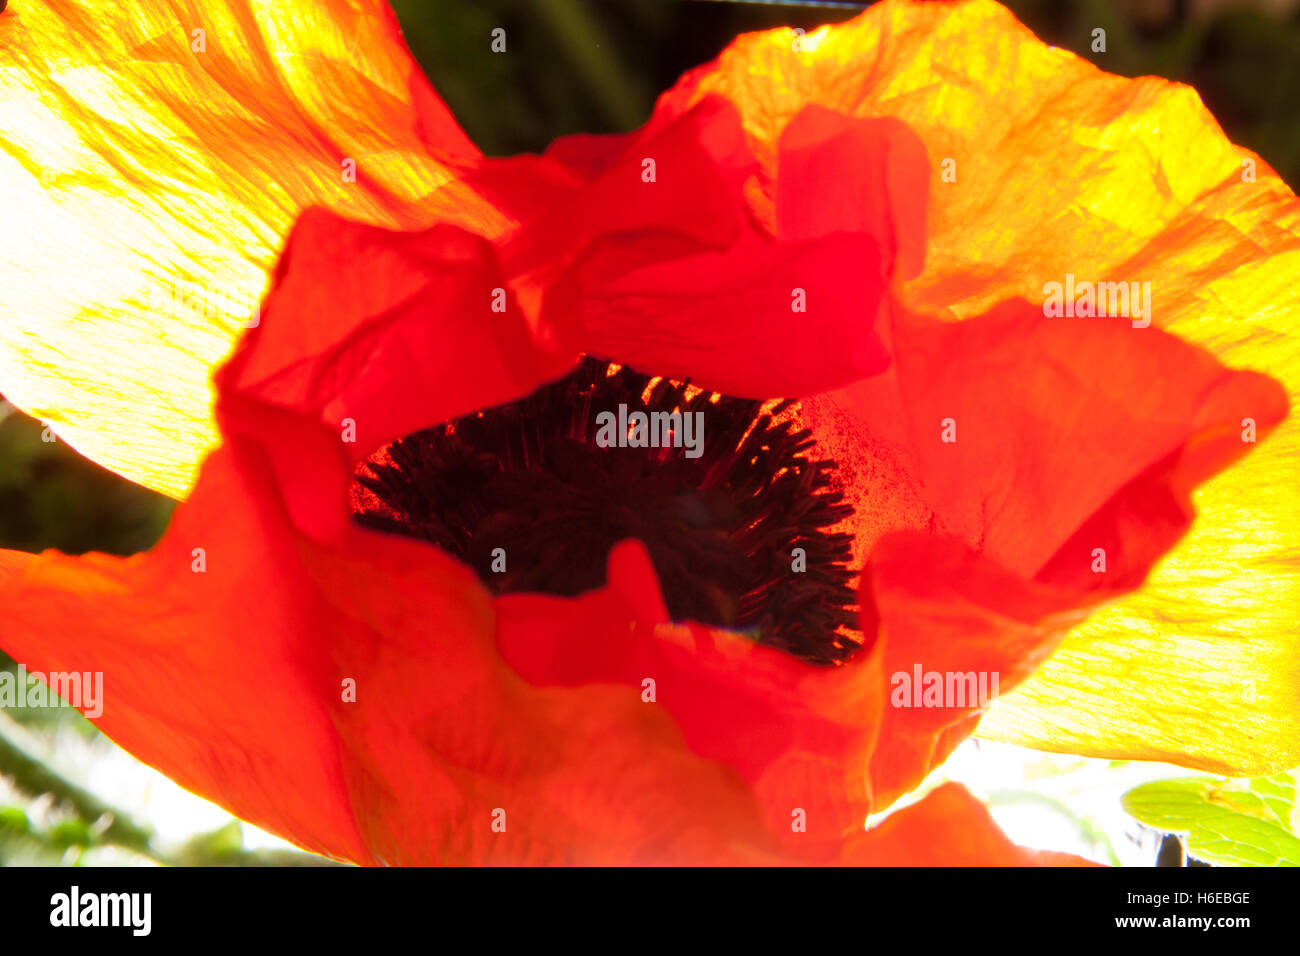 Abstract photograph of a poppy flower, Papaveroideae of the family Papaveraceae, strong back lighting, orange yellowStock Photo